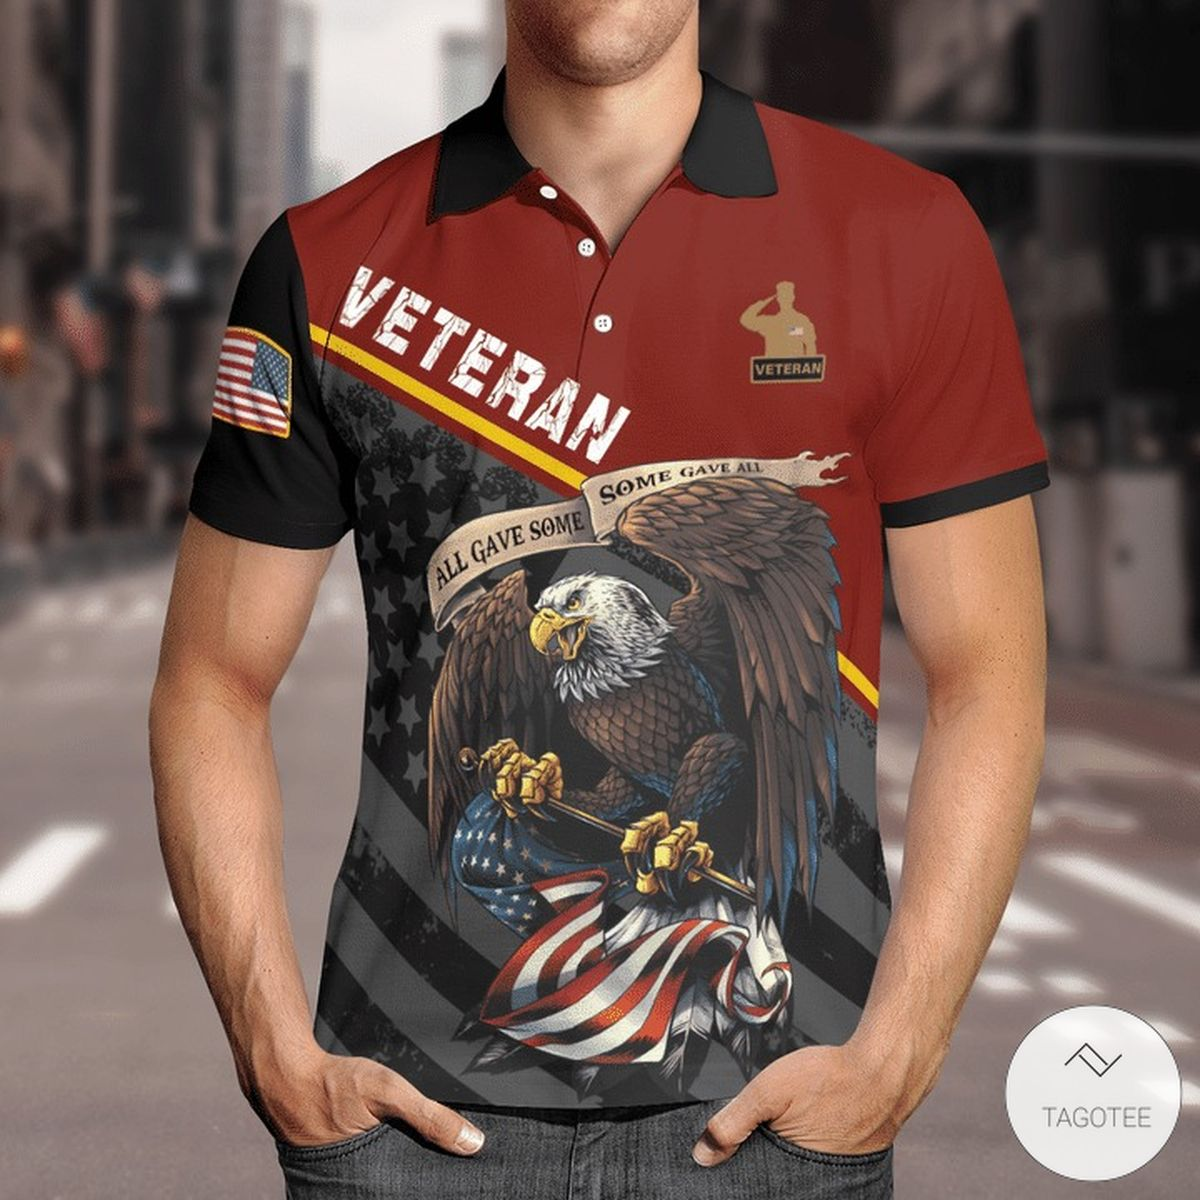 Veteran All Gave Some Some Gave All Polo Shirt